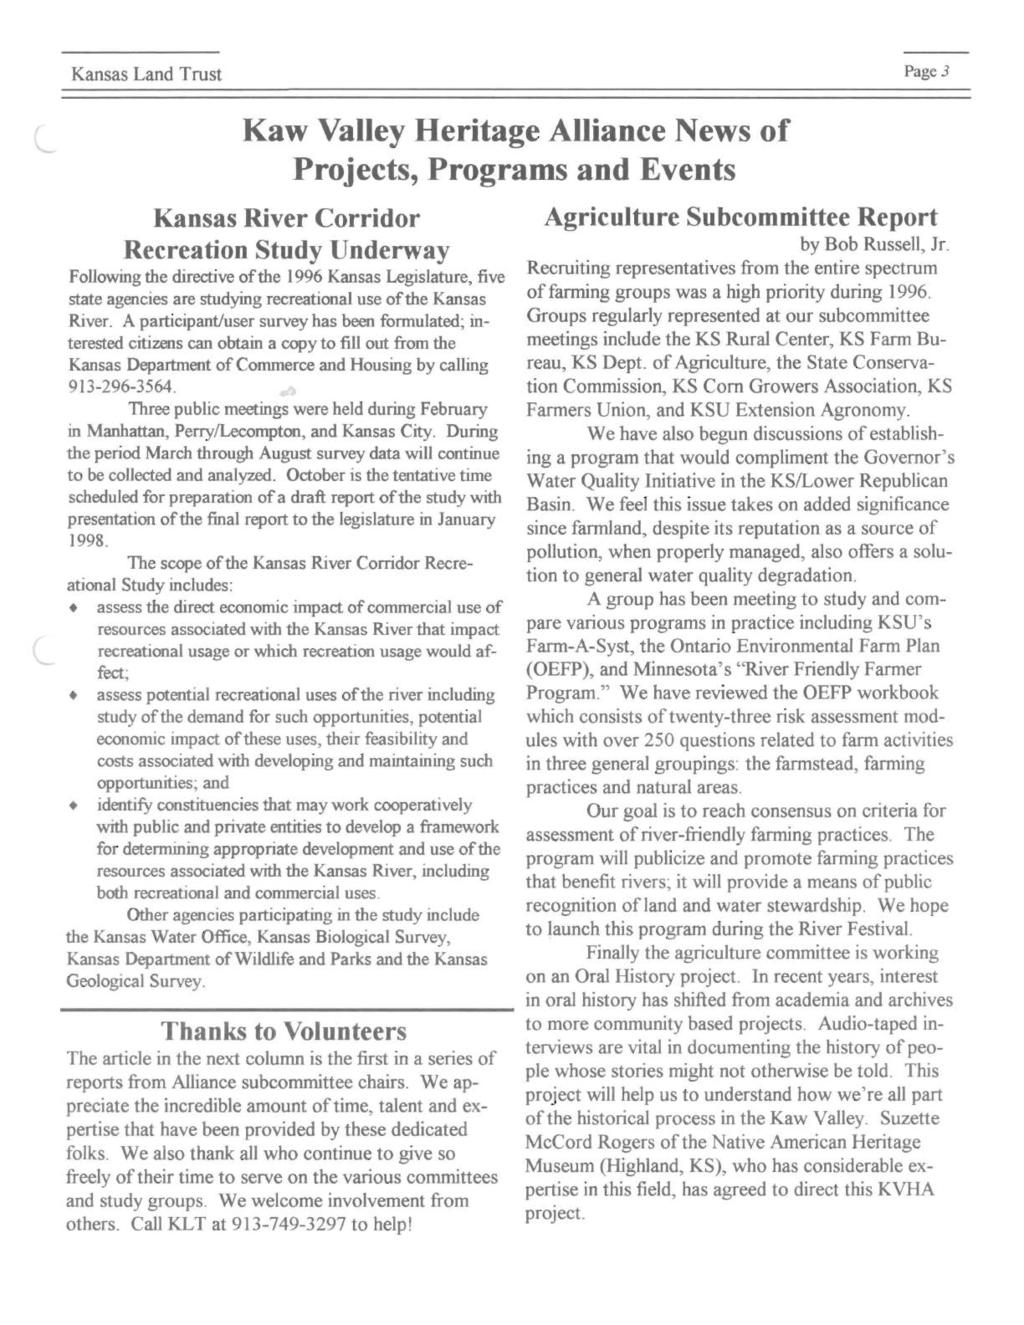 Kansas Land Trust Page 3 Kaw Valley Heritage Alliance News of Projects, Programs and Events Kansas River Corridor Recreation Study Underway Following the directive of the 1996 Kansas Legislature,